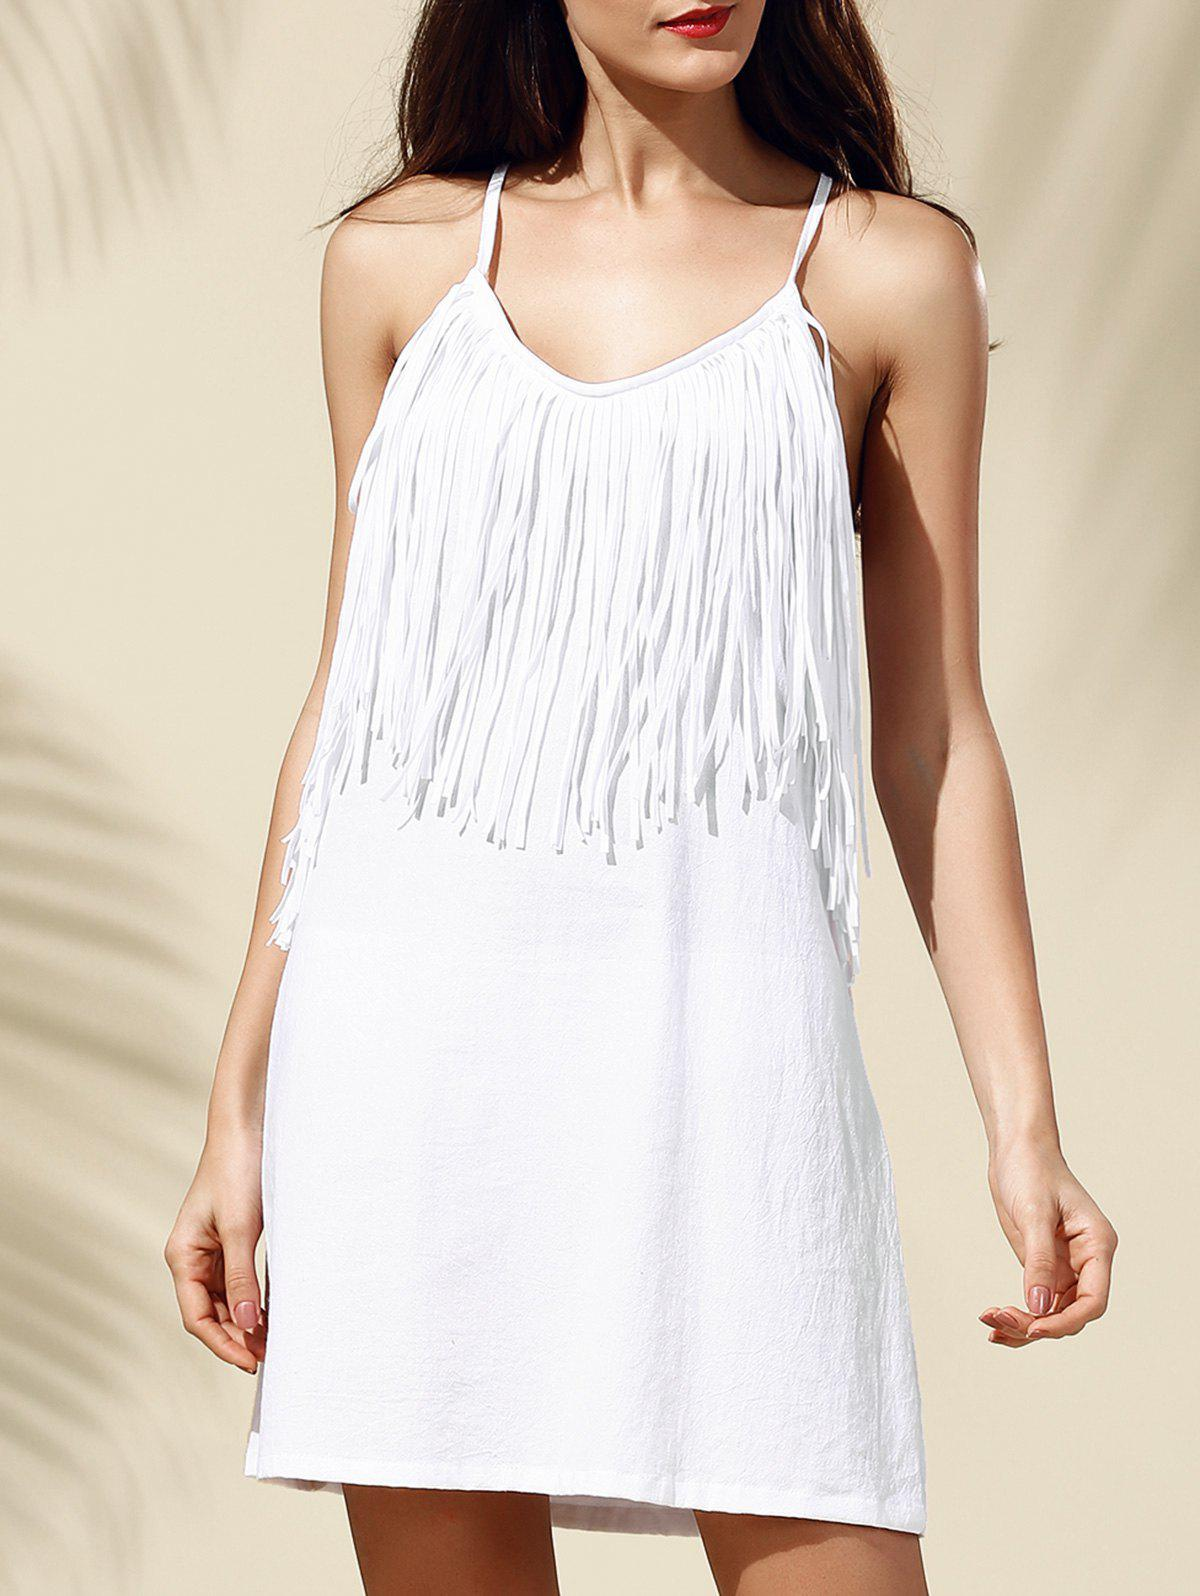 Stylish Fringe Decoration Spaghetti Strap Backless Women's Dress - WHITE S